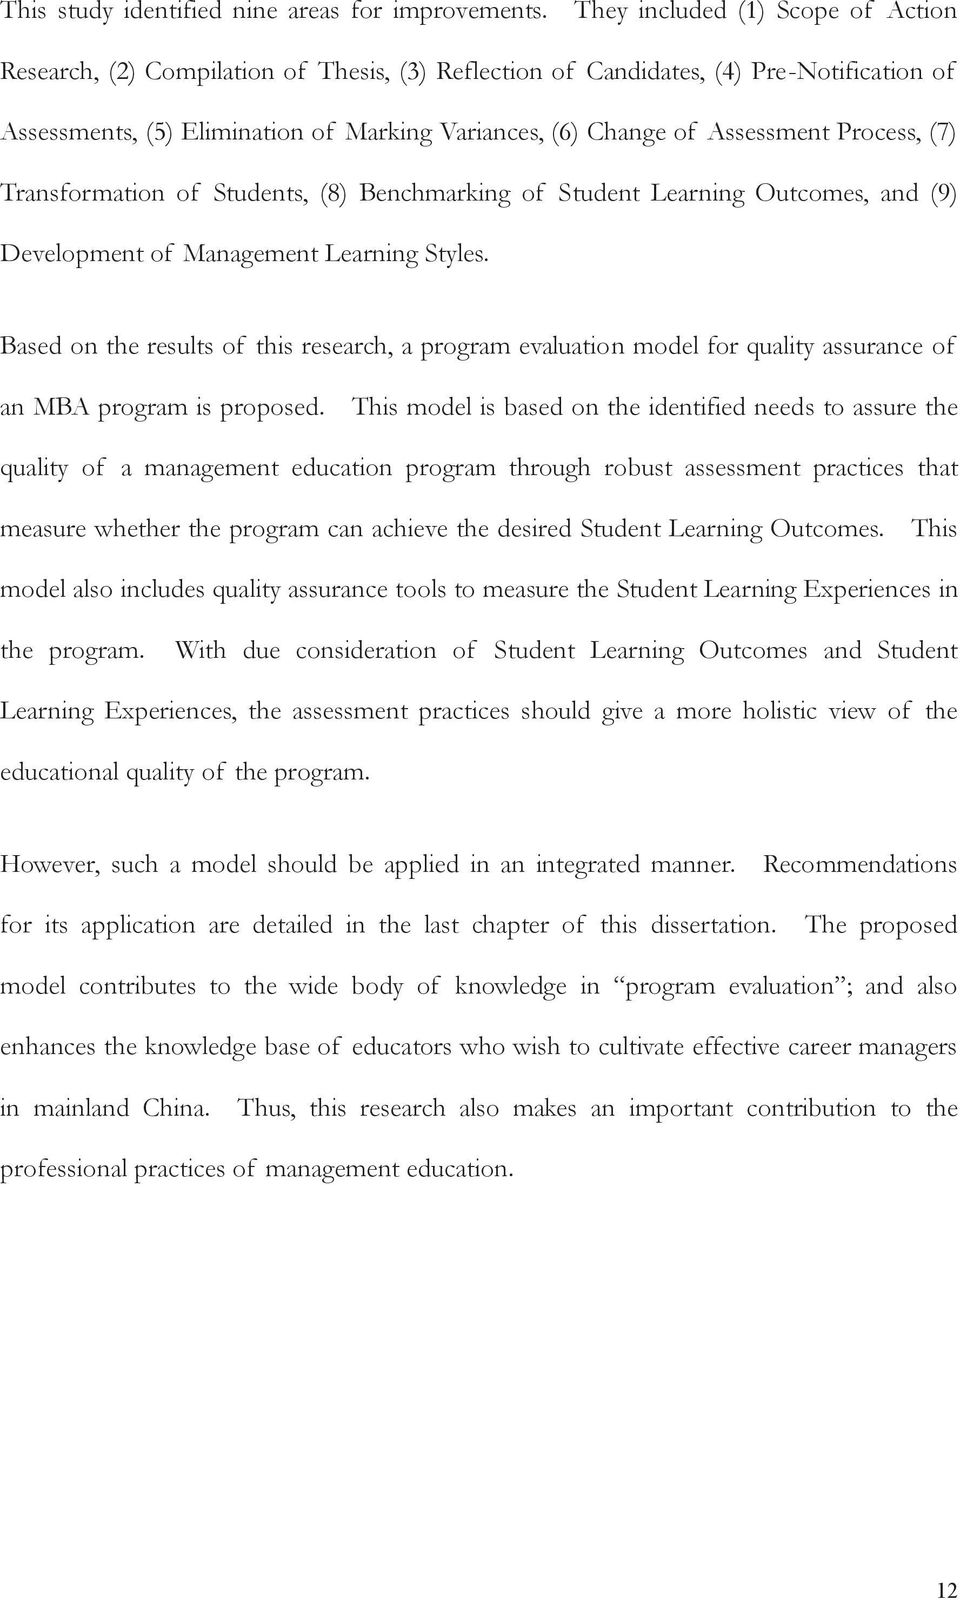 Assessment Process, (7) Transformation of Students, (8) Benchmarking of Student Learning Outcomes, and (9) Development of Management Learning Styles.